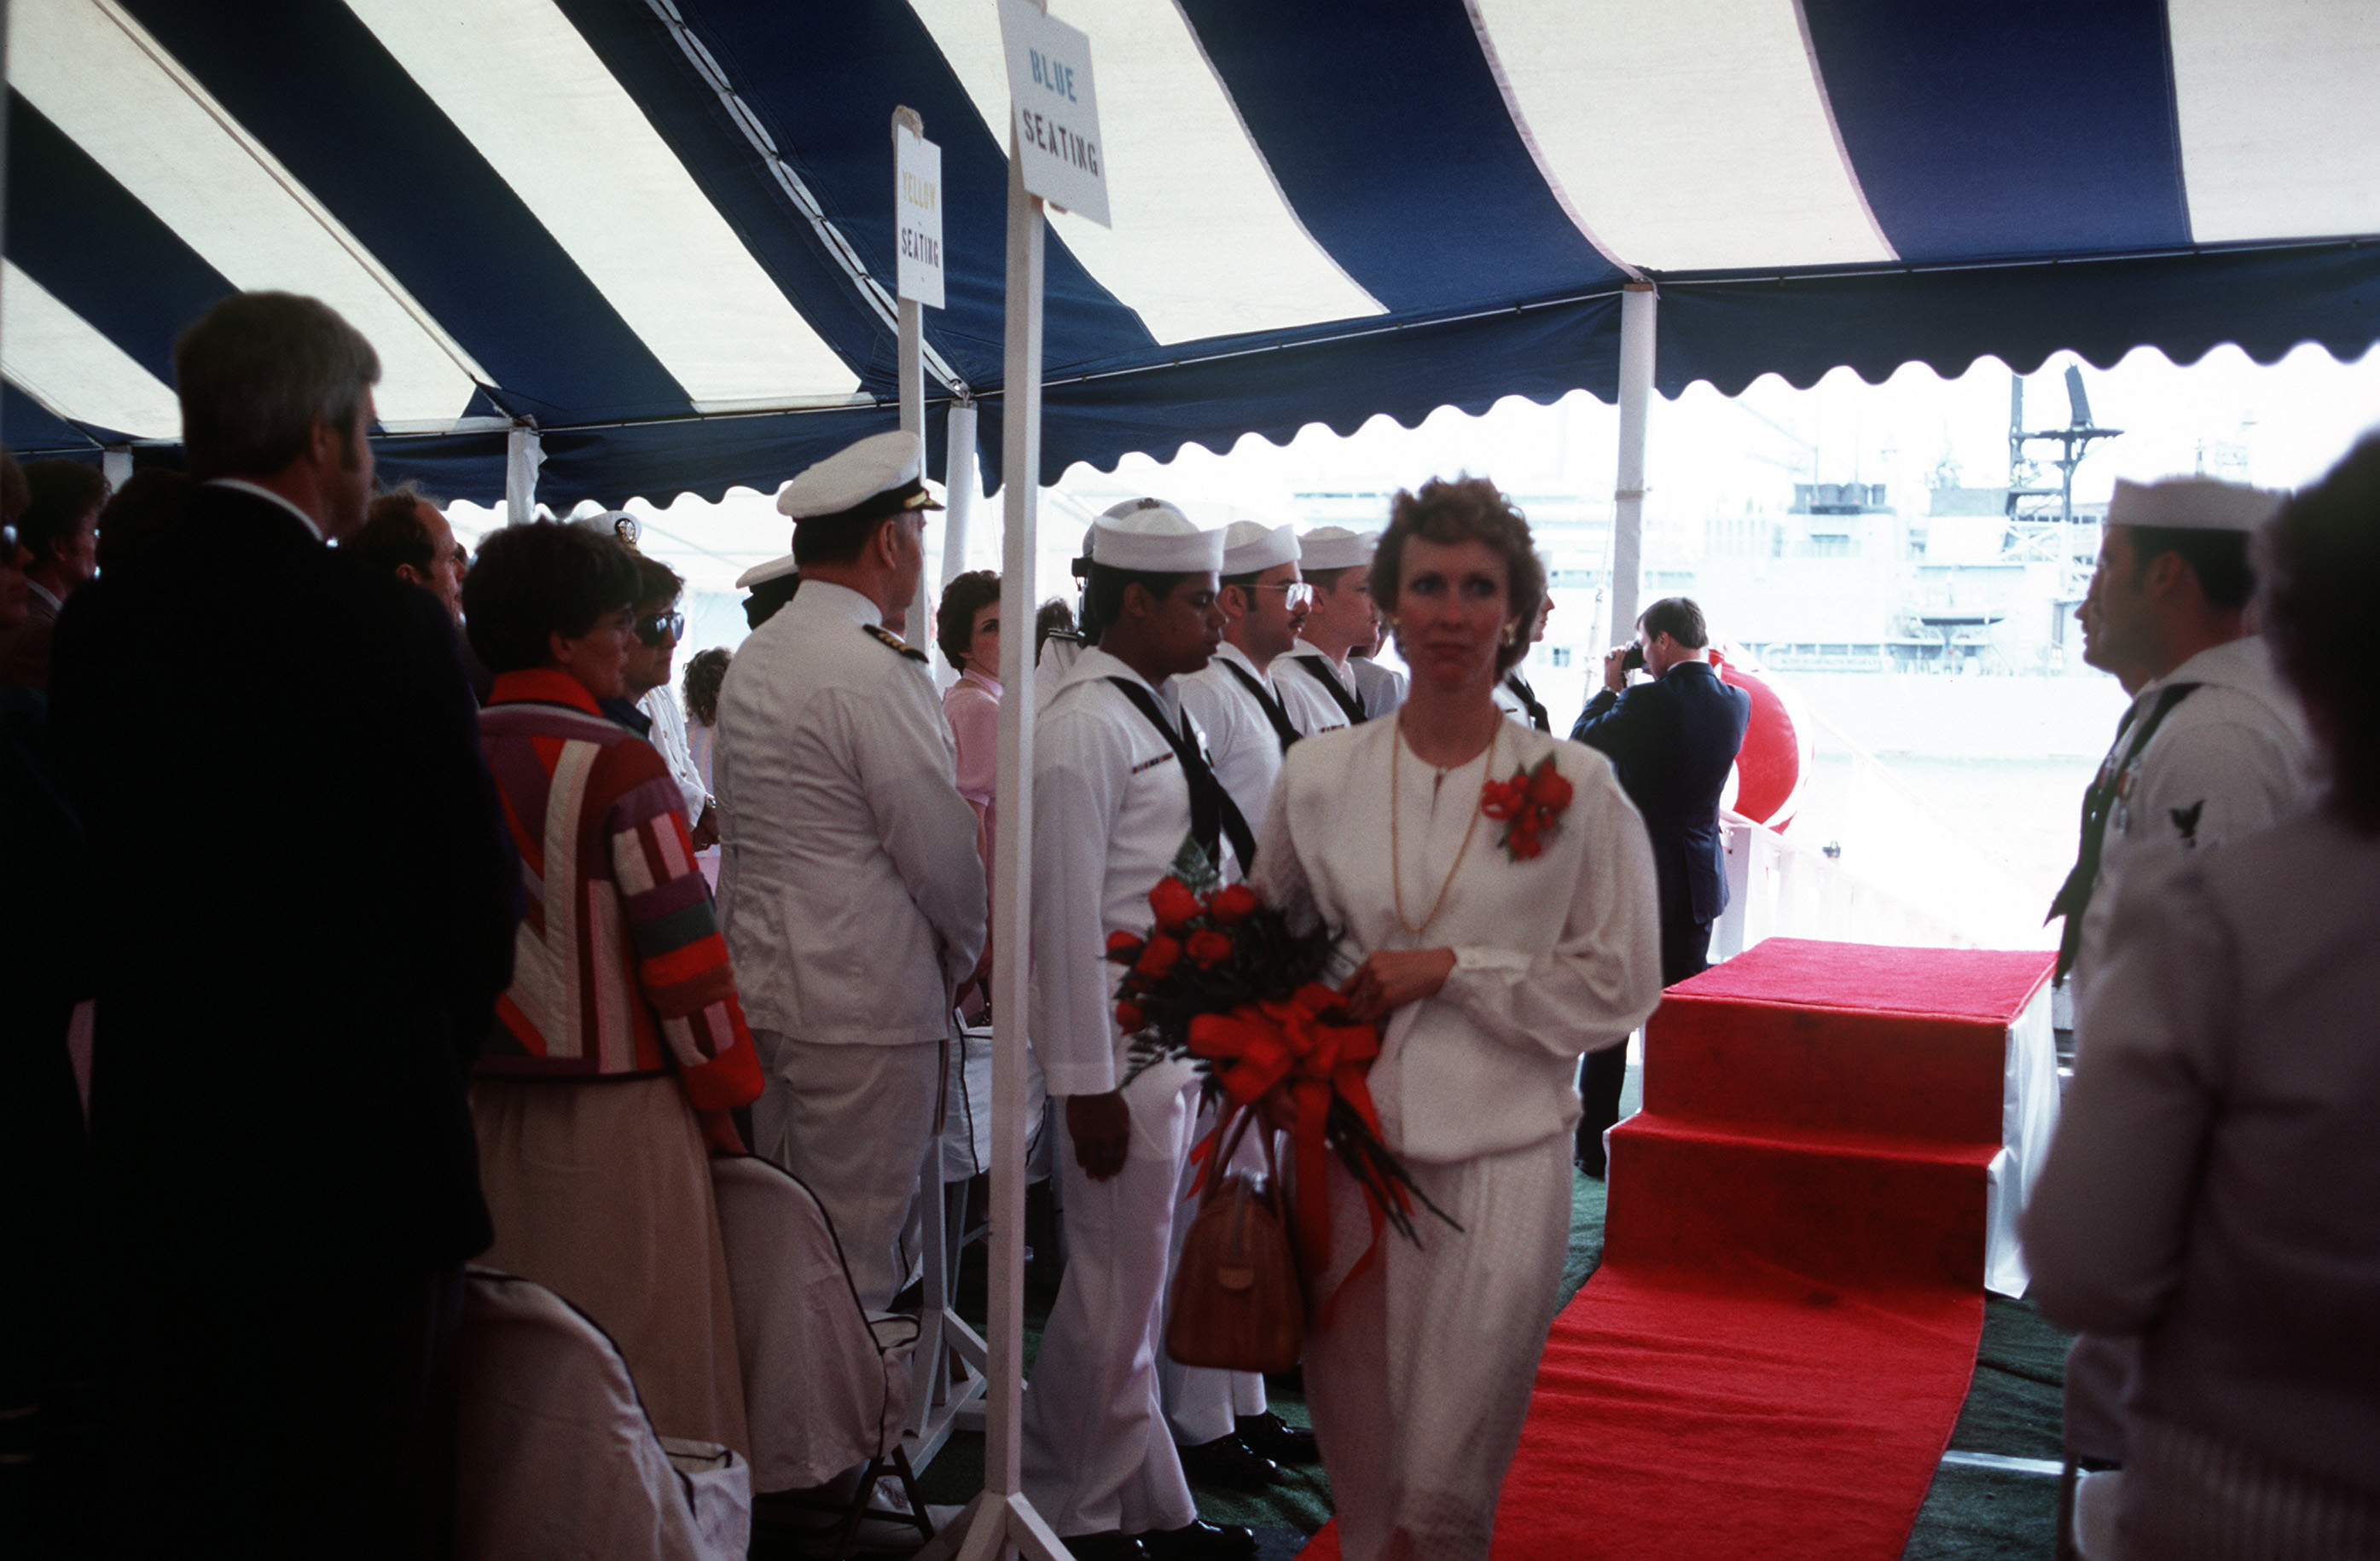 Kathleen Brewerton Garn, sponsor, arrives at the commissioning ceremony for the nuclear-powered attack submarine USS SALT LAKE CITY (SSN 716). She is the wife of Senator Jake Garn, R-Utah